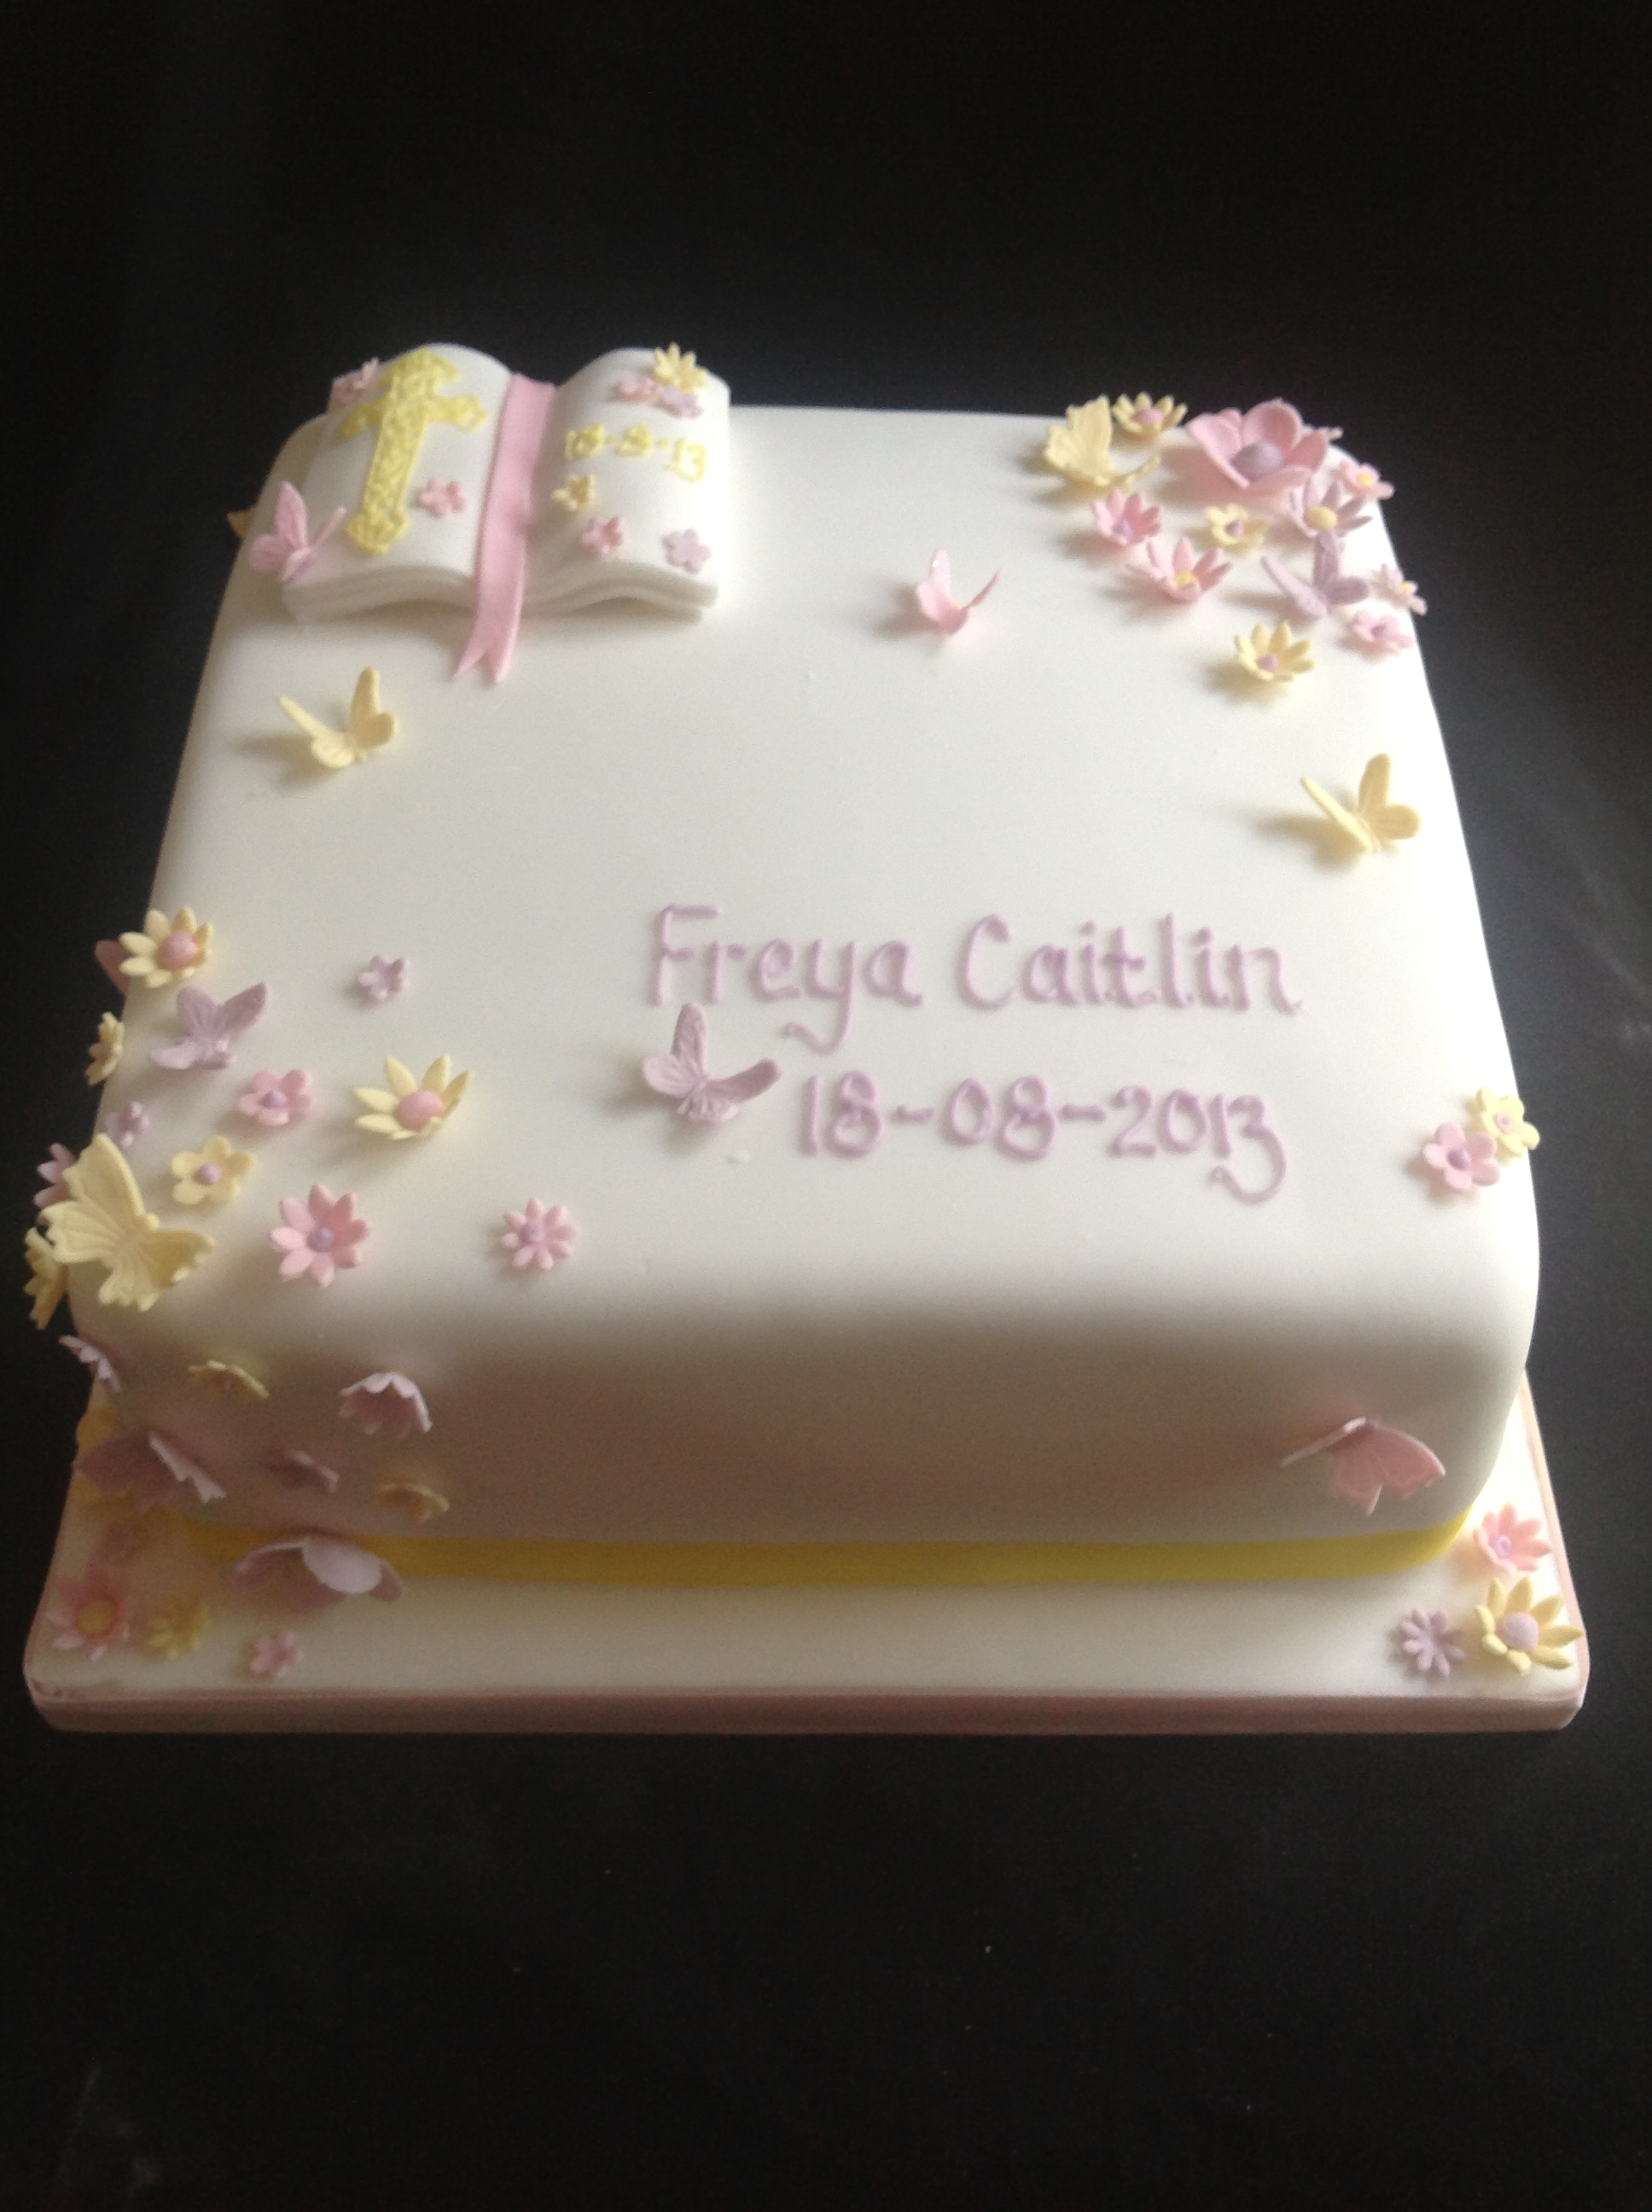 A square cake with a little bible in the top left corner, little pastel coloured butterflies and blossom flowers